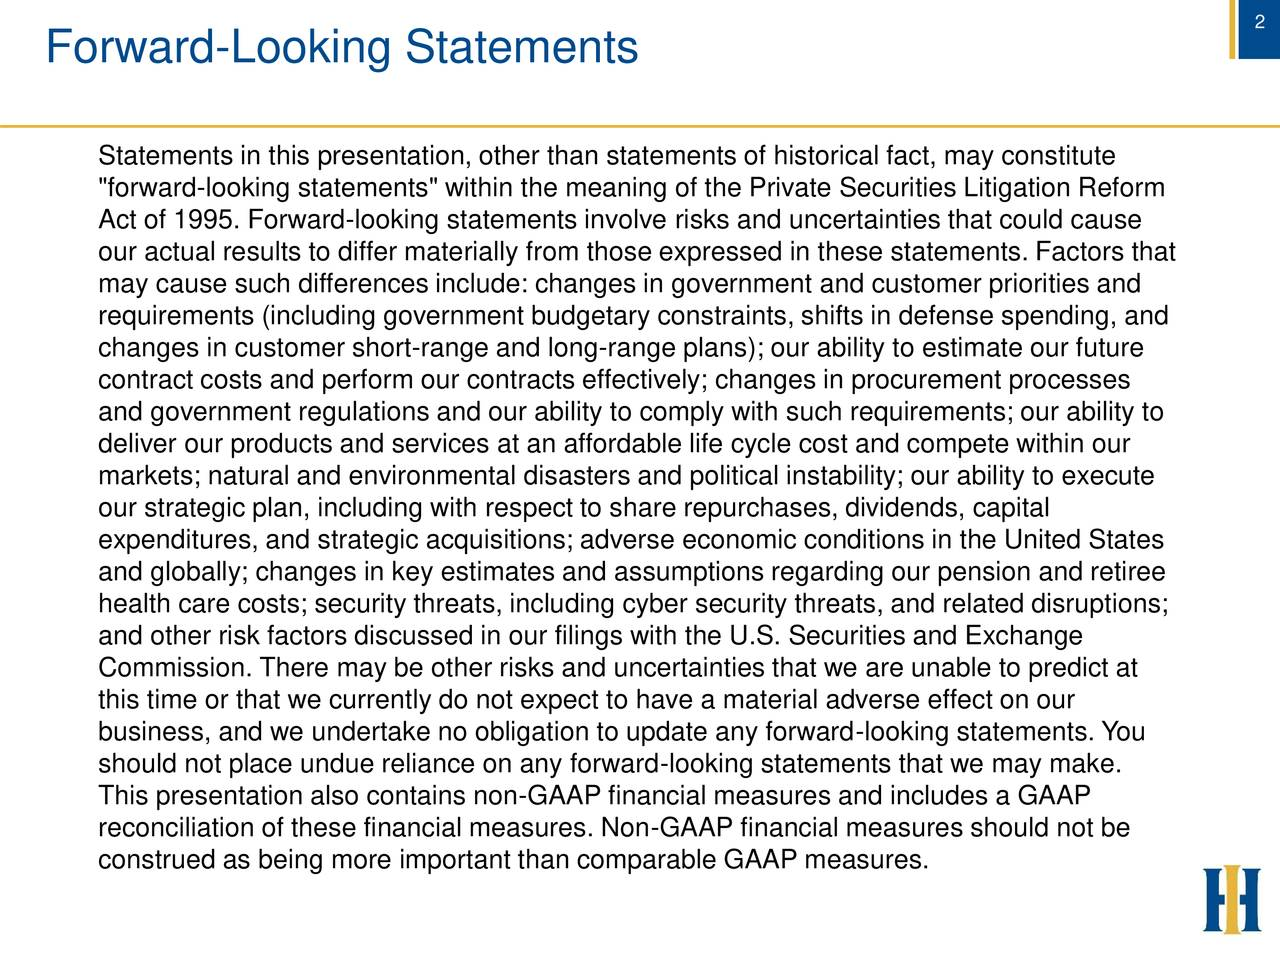 "Forward-Looking Statements Statements in this presentation, other than statements of historical fact, may constitute ""forward-looking statements"" within the meaning of the Private Securities Litigation Reform Act of 1995. Forward-looking statements involve risks and uncertainties that could cause our actual results to differ materially from those expressed in these statements. Factors that may cause such differences include: changes in government and customer priorities and requirements (including government budgetary constraints, shifts in defense spending, and changes in customer short-range and long-range plans); our ability to estimate our future contract costs and perform our contracts effectively; changes in procurement processes and government regulations and our ability to comply with such requirements; our ability to deliver our products and services at an affordable life cycle cost and compete within our markets; natural and environmental disasters and political instability; our ability to execute our strategic plan, including with respect to share repurchases, dividends, capital expenditures, and strategic acquisitions; adverse economic conditions in the United States and globally; changes in key estimates and assumptions regarding our pension and retiree health care costs; security threats, including cyber security threats, and related disruptions; and other risk factors discussed in our filings with the U.S. Securities and Exchange Commission. There may be other risks and uncertainties that we are unable to predict at this time or that we currently do not expect to have a material adverse effect on our business, and we undertake no obligation to update any forward-looking statements. You should not place undue reliance on any forward-looking statements that we may make. This presentation also contains non-GAAP financial measures and includes a GAAP reconciliation of these financial measures. Non-GAAP financial measures should not be construed as being more important than comparable GAAP measures."